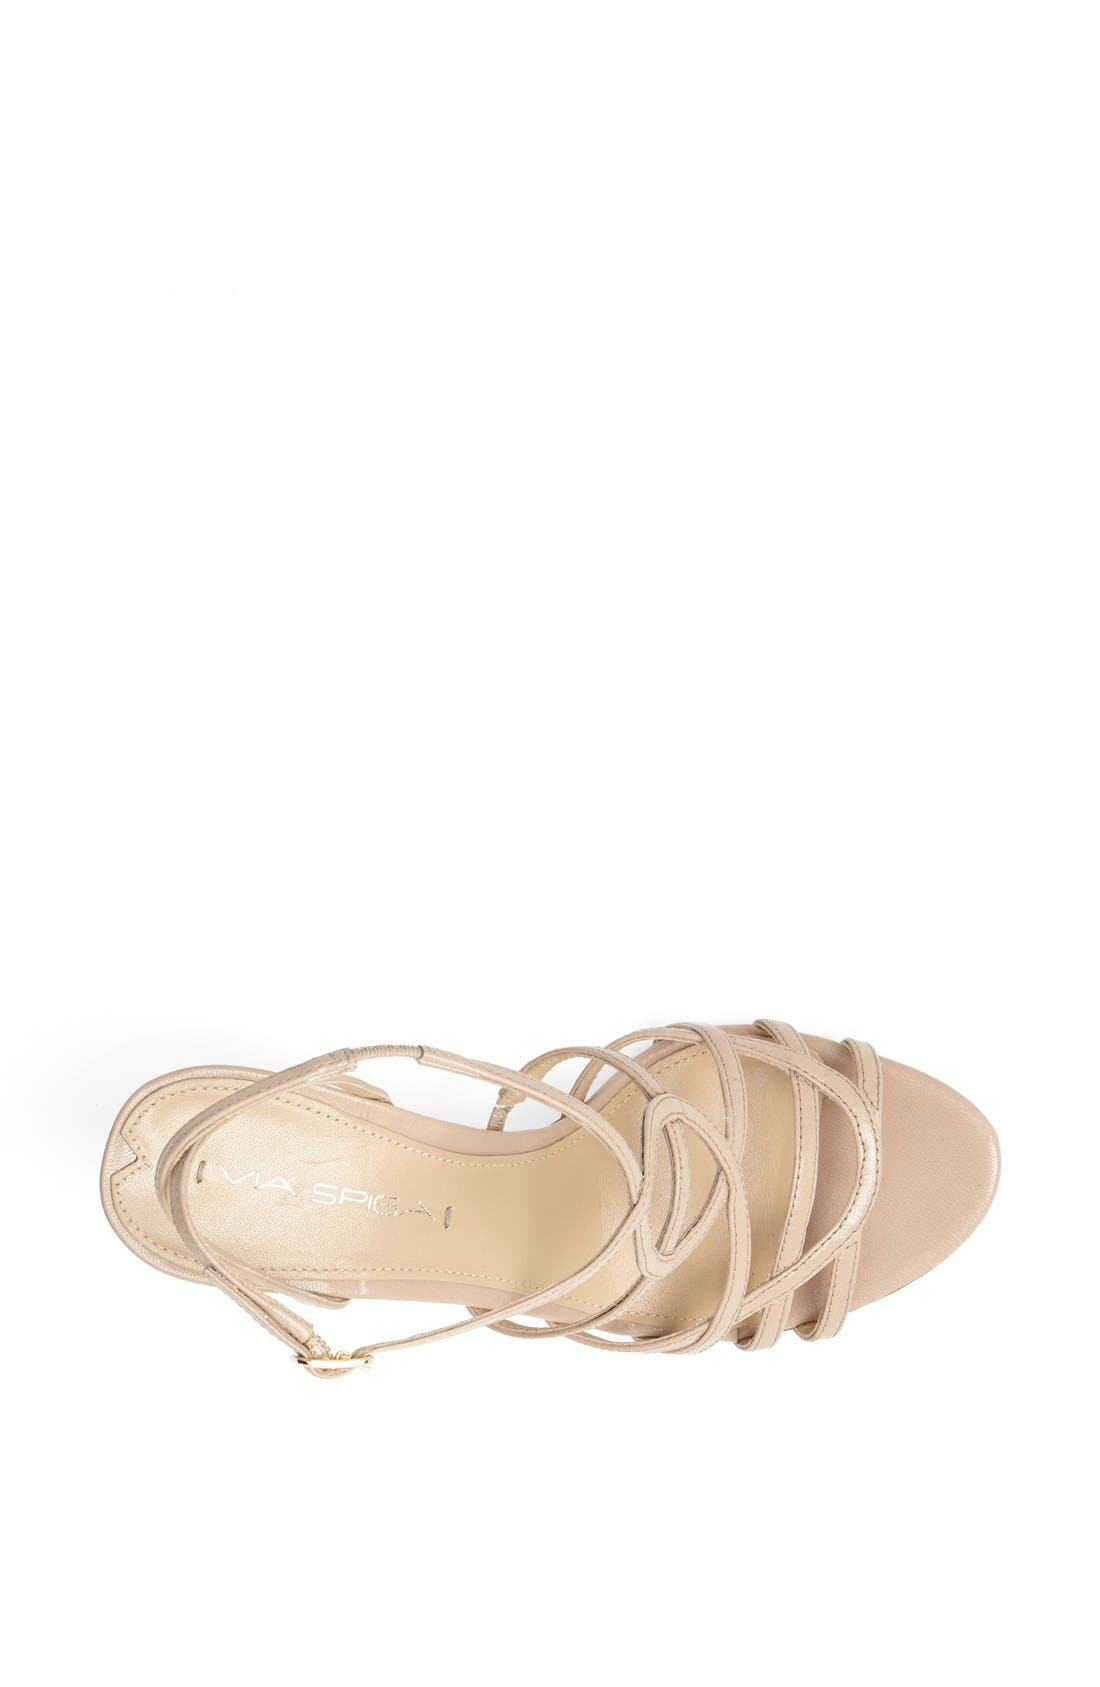 Alternate Image 3  - Via Spiga 'Ima' Sandal (Nordstrom Exclusive)